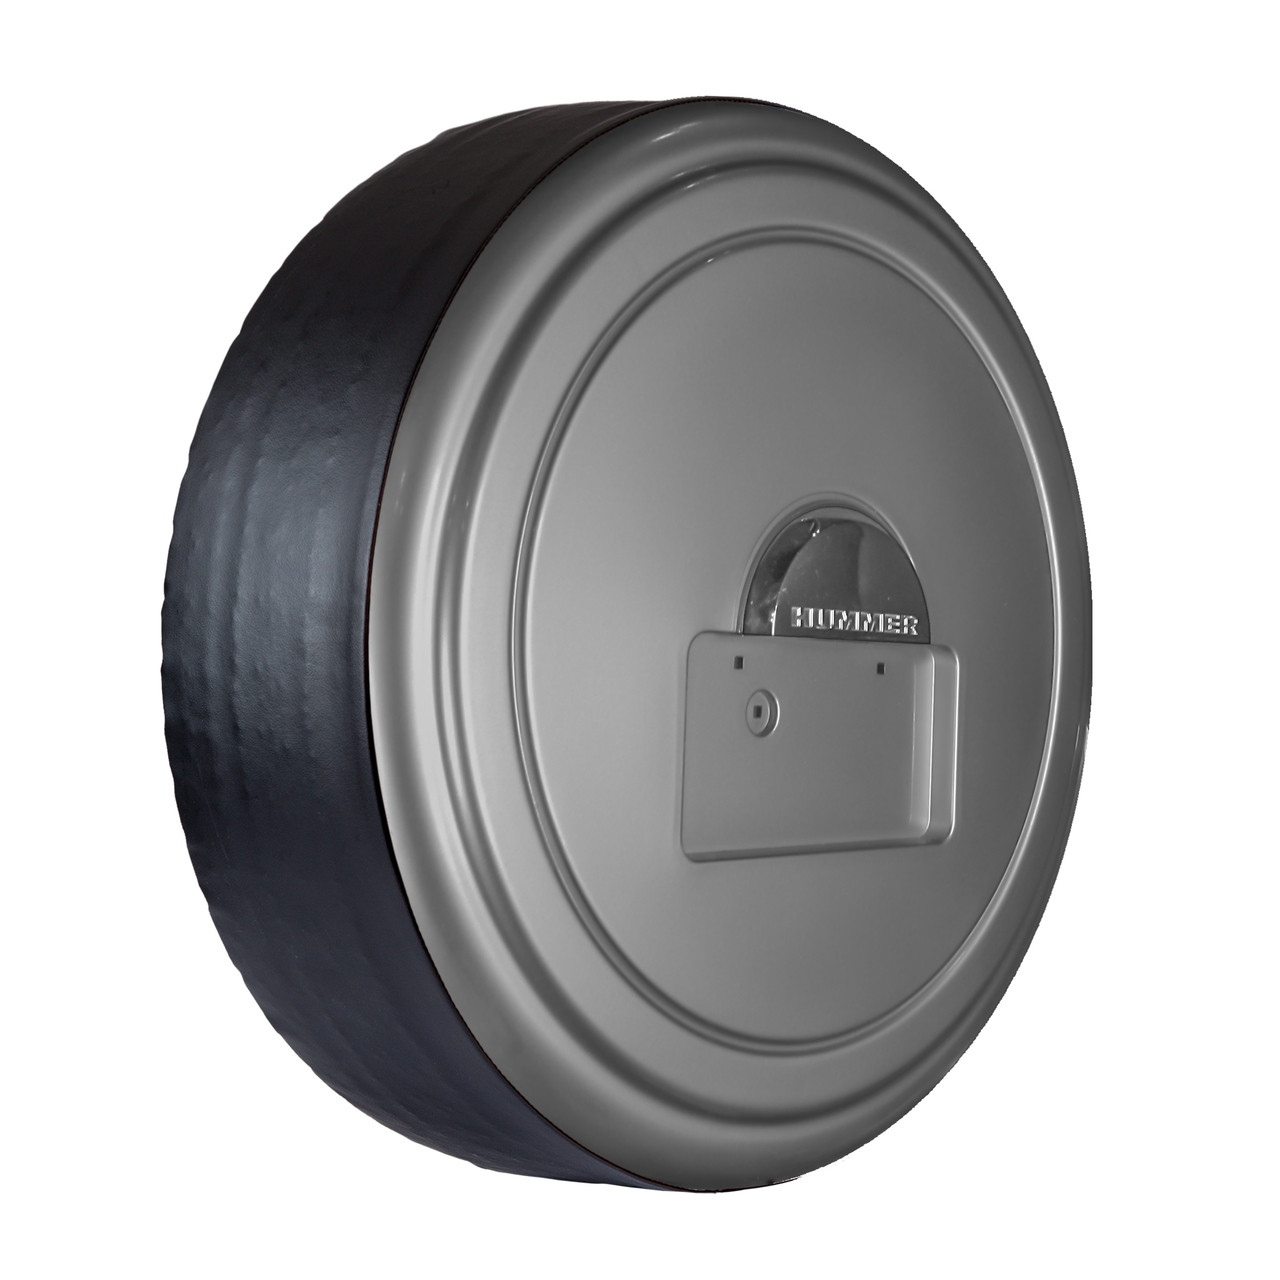 Hummer H2 Tire Rim Caps Decals 03 04 05 06 07 08 09 AND SUT